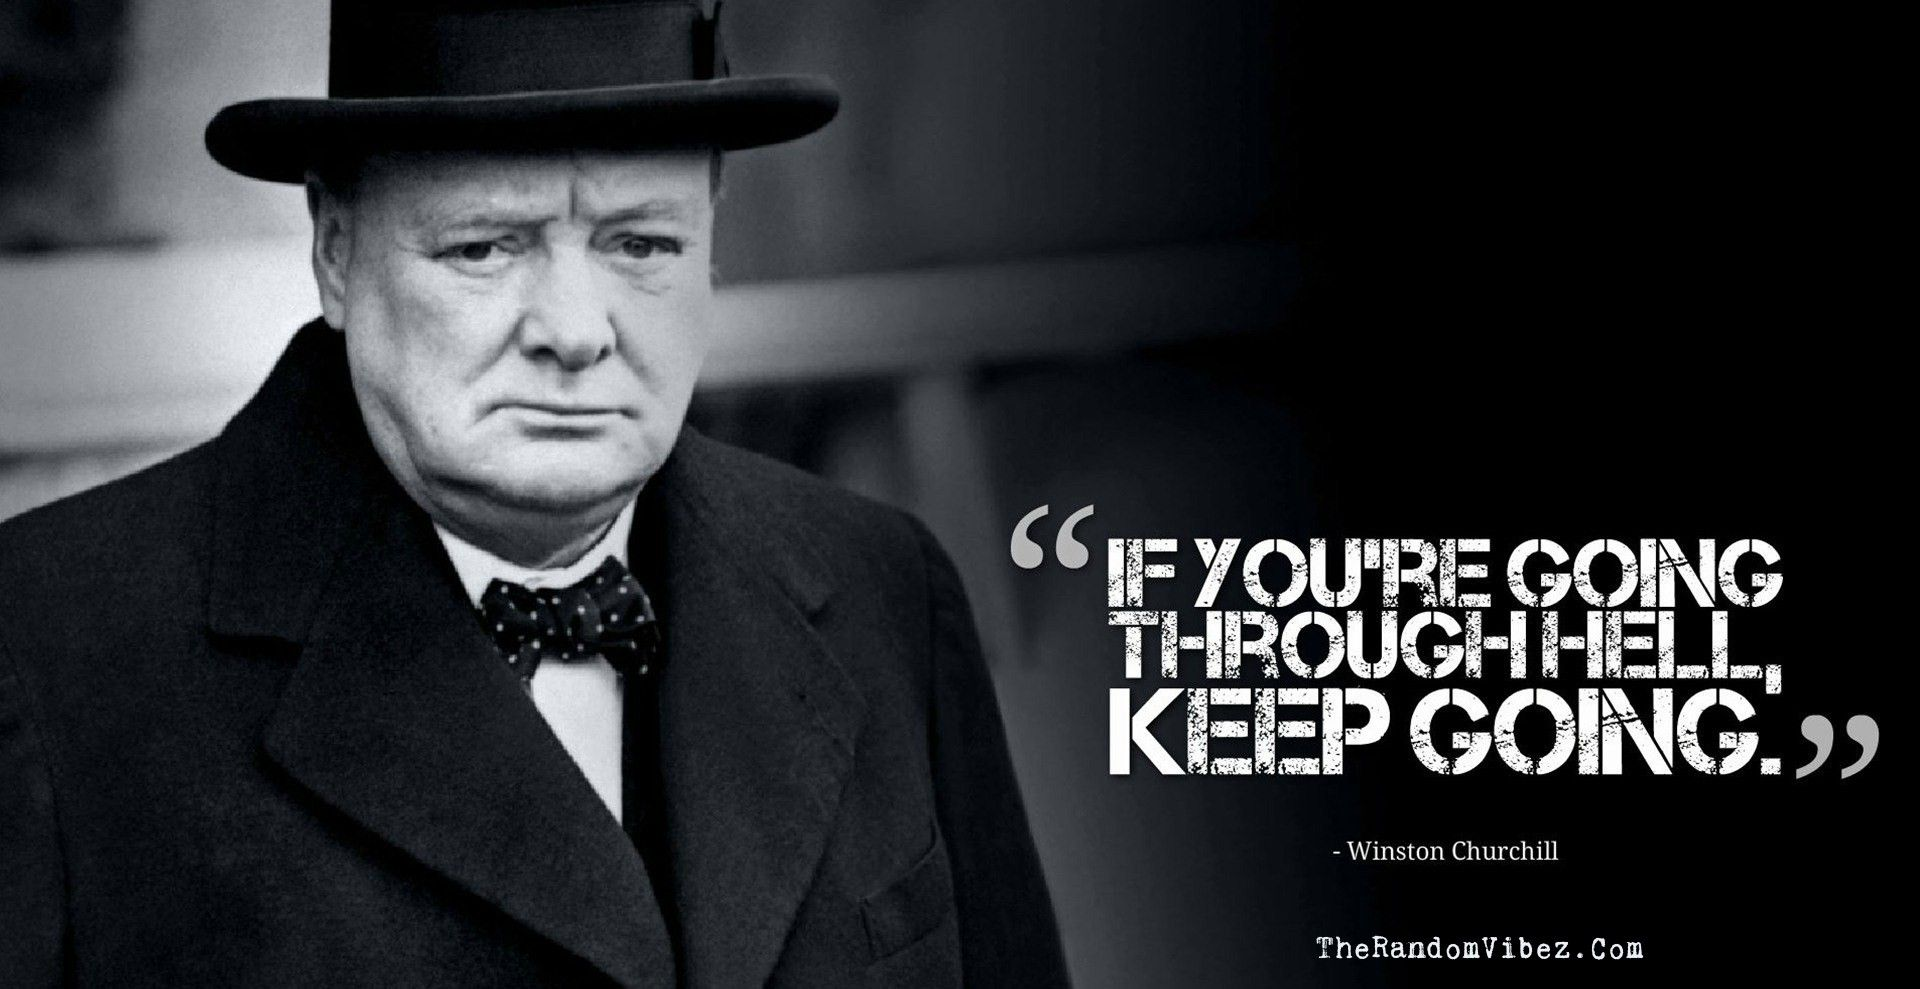 Most Famous Winston Churchill Quotes Churchill Quotes Winston Churchill Quotes Winston Churchill Quotes Funny